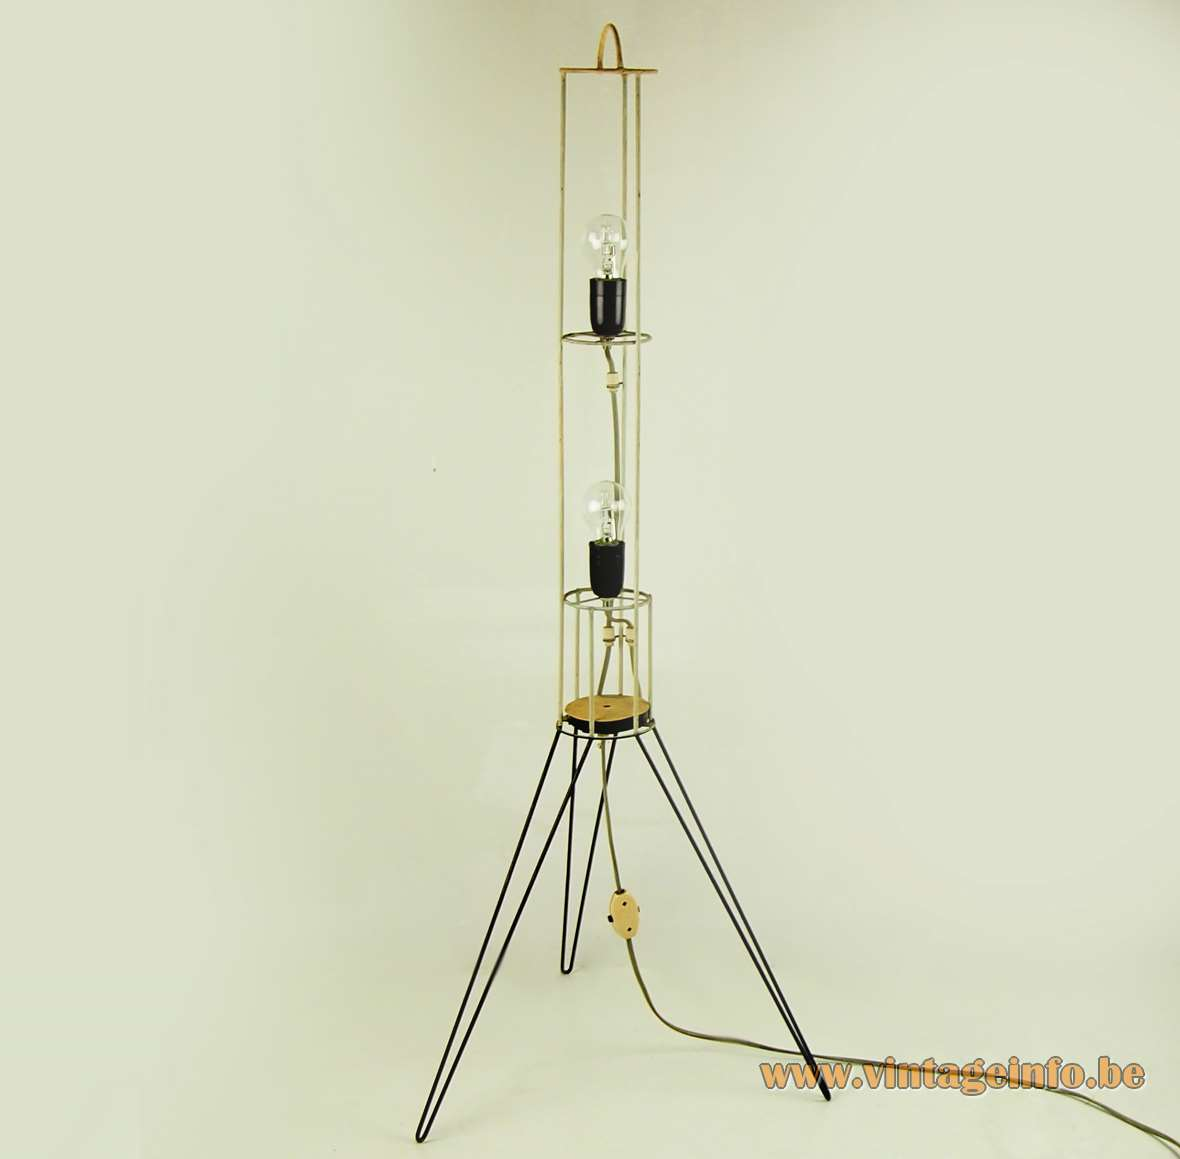 Aro Leuchte Tripod Hairpin Floor Lamp celluloid 1950s 1960s cylinder tube yellow Rhodoïd honeycomb Germany